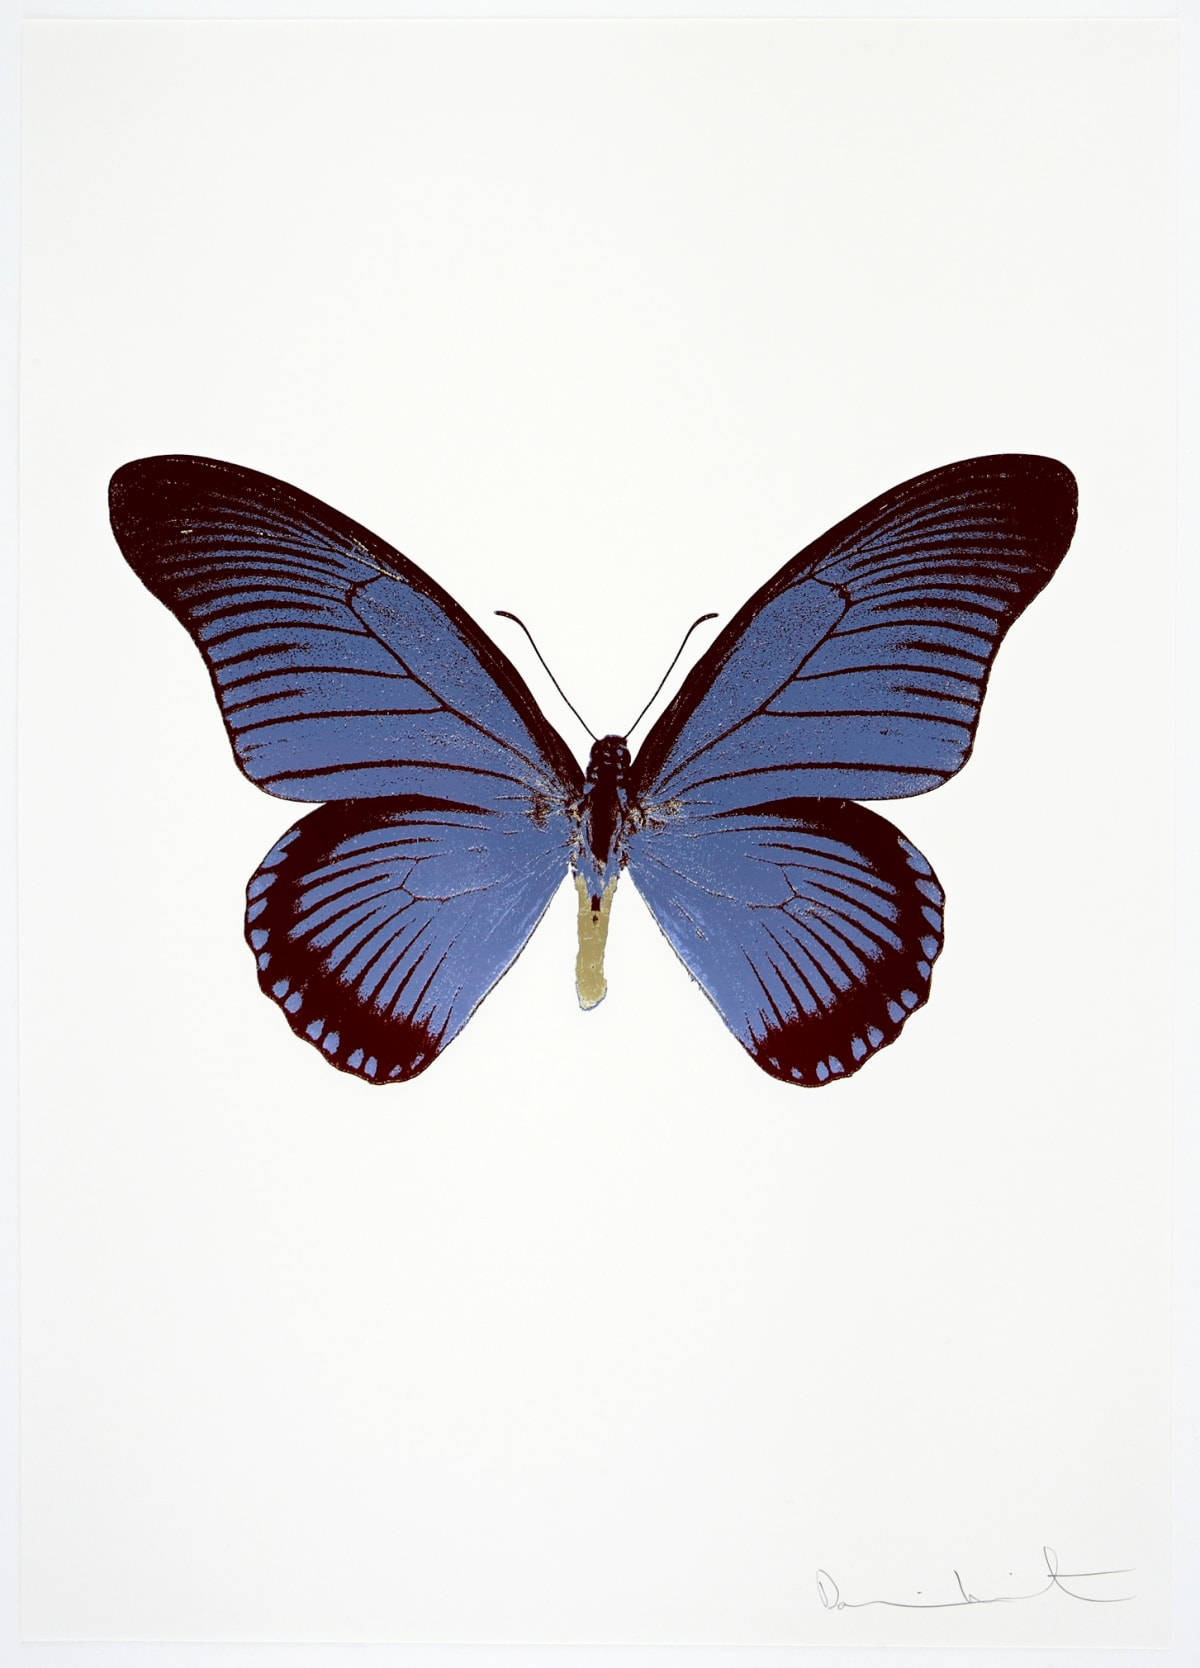 Damien Hirst The Souls IV - Cornflower Blue/Burgundy/Cool Gold Damien Hirst butterfly foil print for sale Damien Hirst print for sale , 2010 3 colour foil block on 300gsm Arches 88 archival paper. Signed and numbered. Published by Paul Stolper and Other Criteria 72 x 51cm OC8019 / 1418-42 Edition of 15